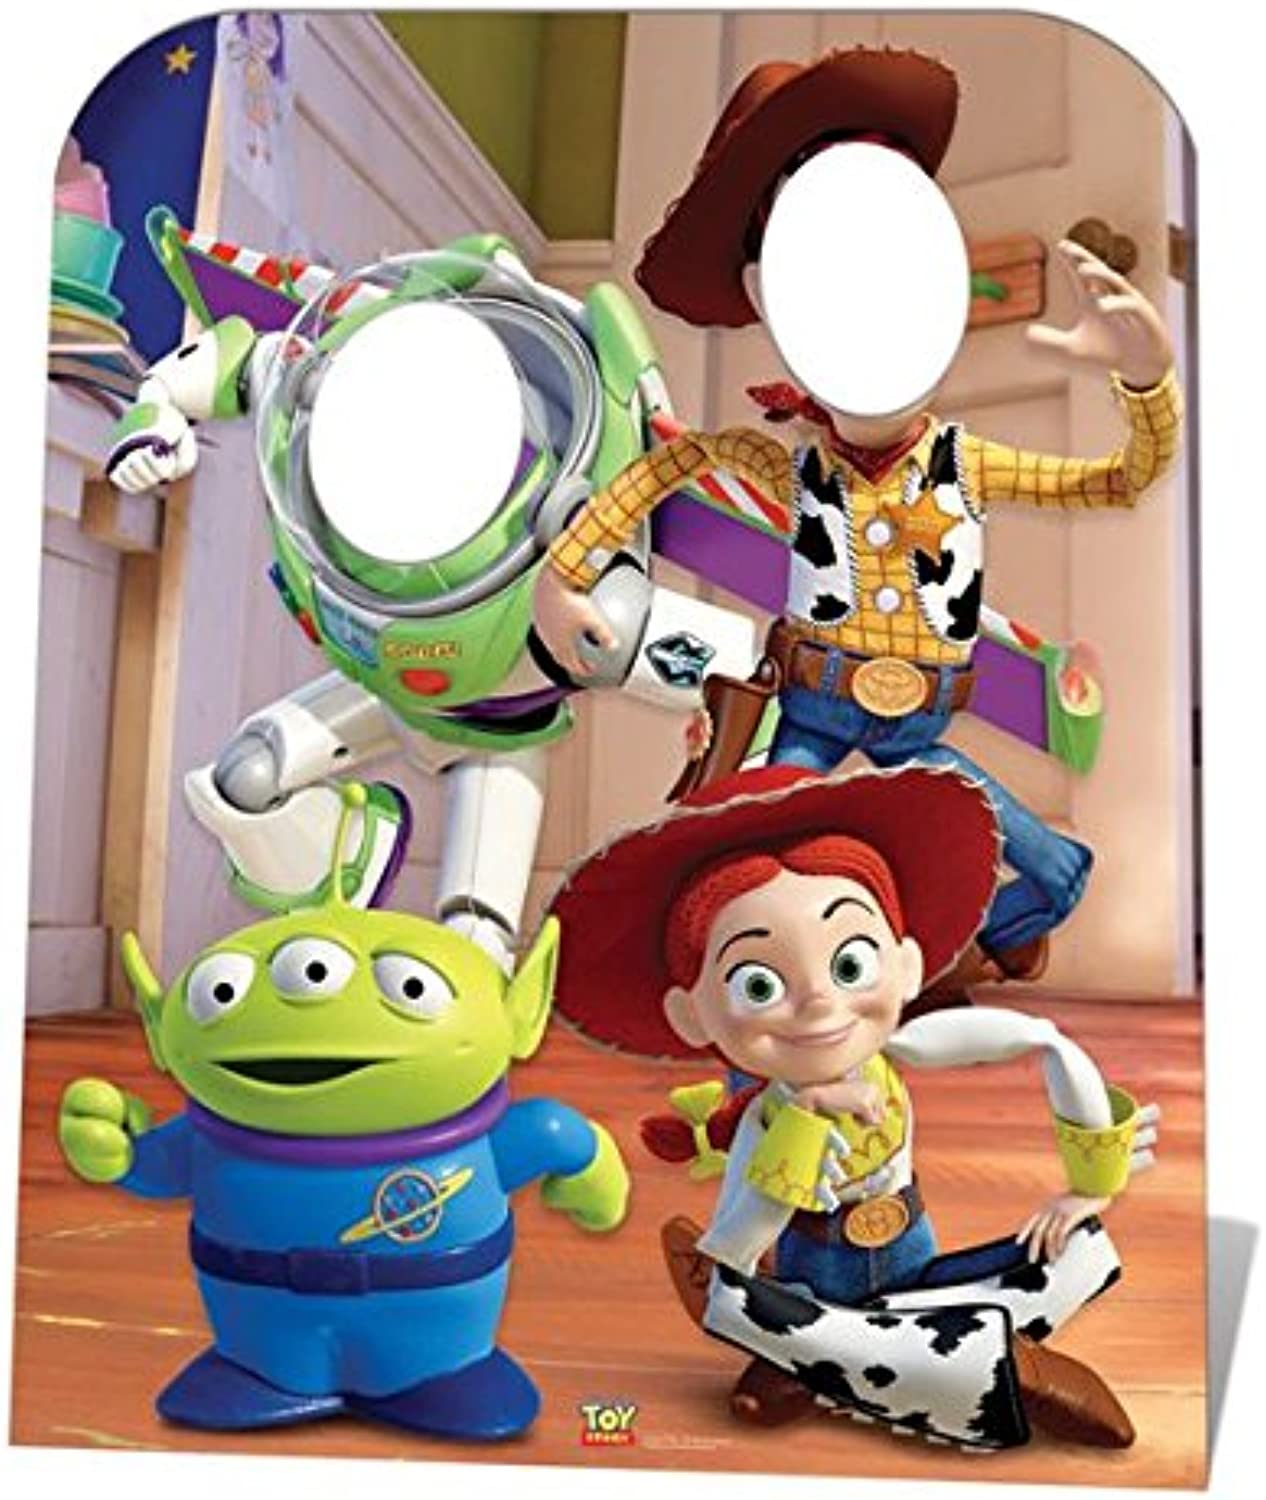 IdealWigsNet Toy Story Stand-In - 1m